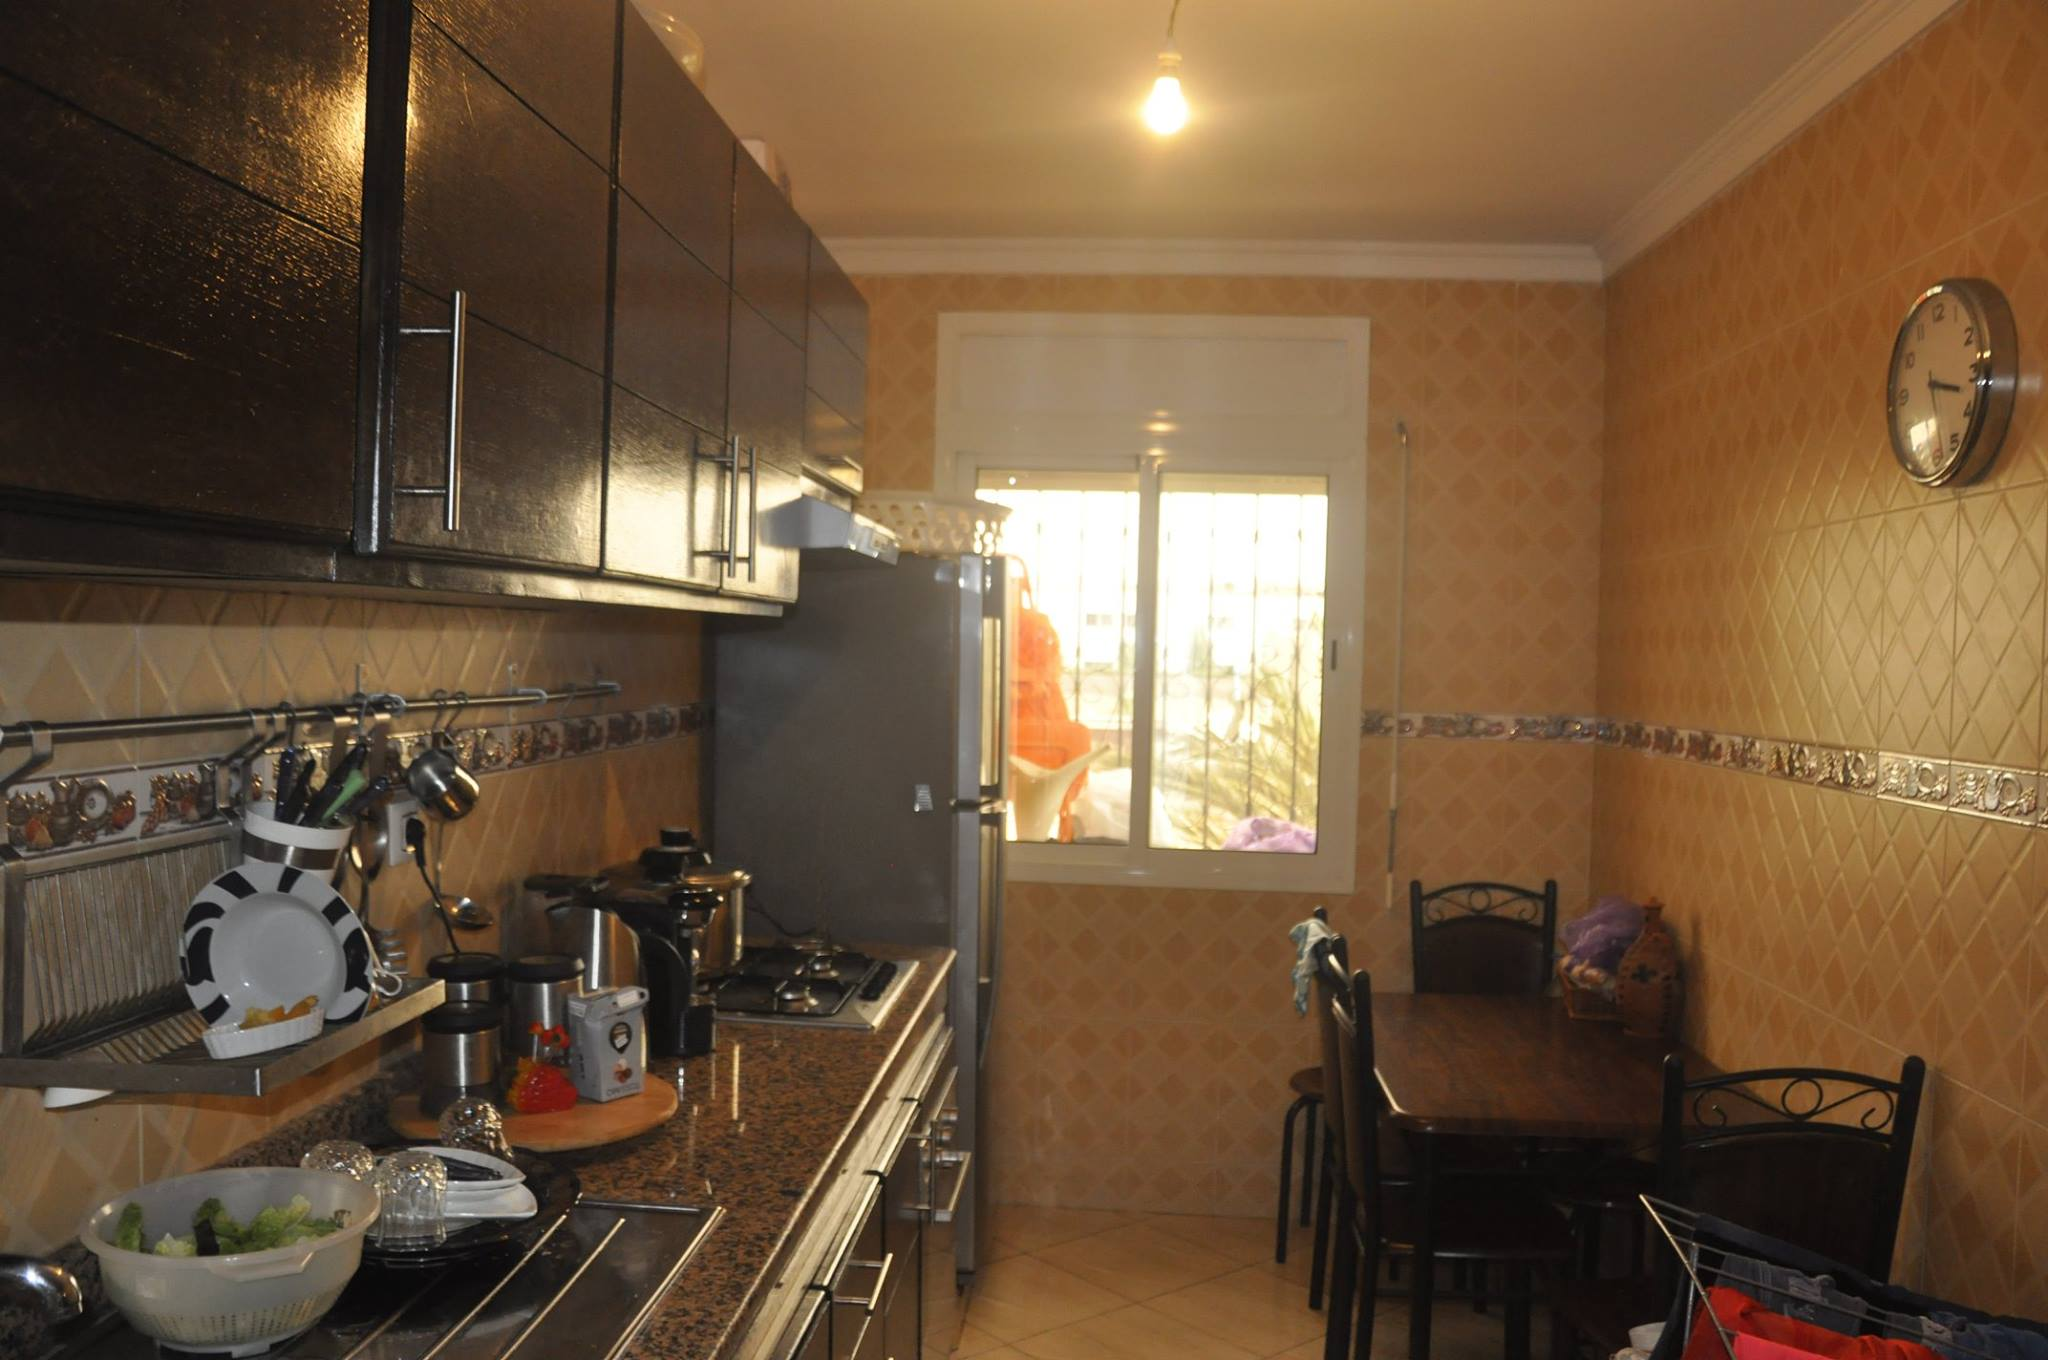 Vente Appartement Casablanca ~ Hubfrdesign.co